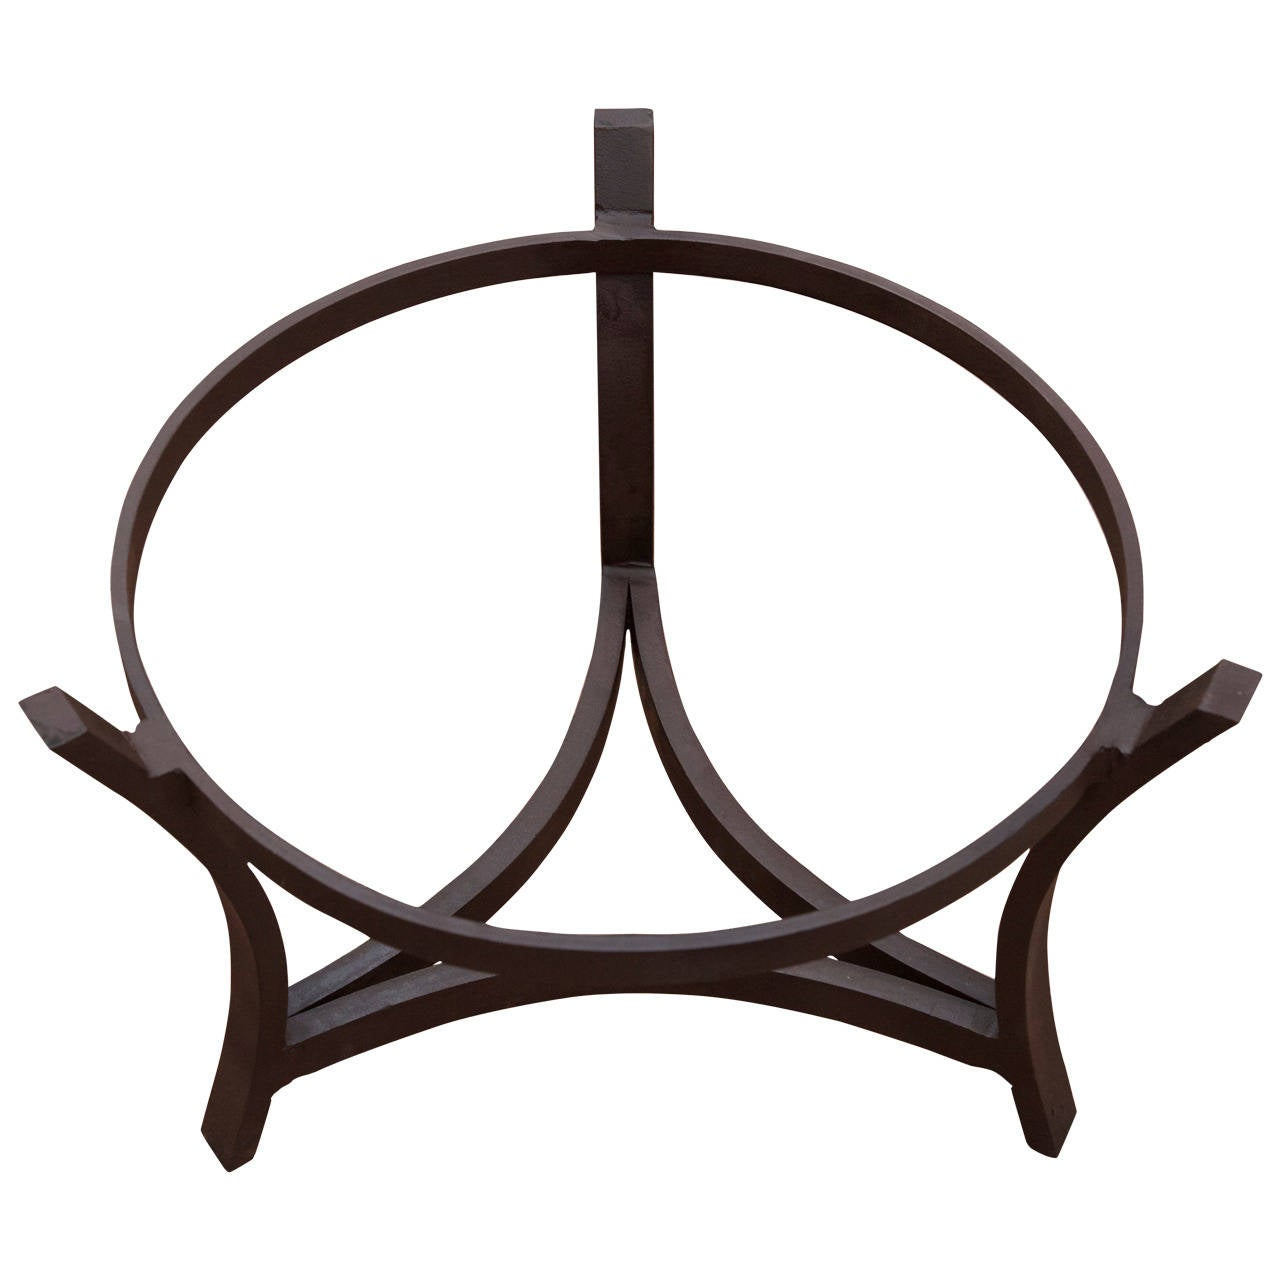 Wrought Iron Table Base Model For Sale At 1stdibs